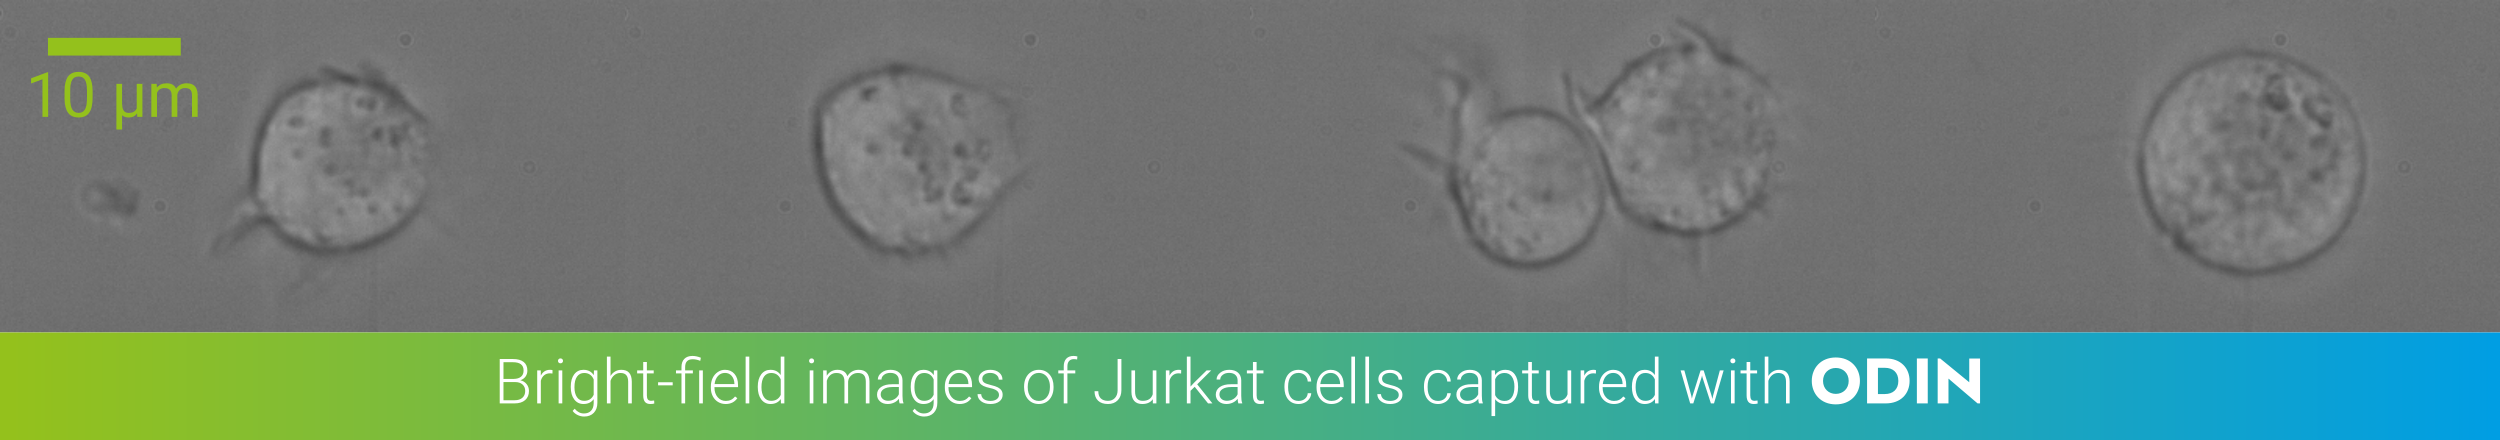 Jurkat cells in bright-field imaged with ODIN at 2800 fps and 5µs shutter time